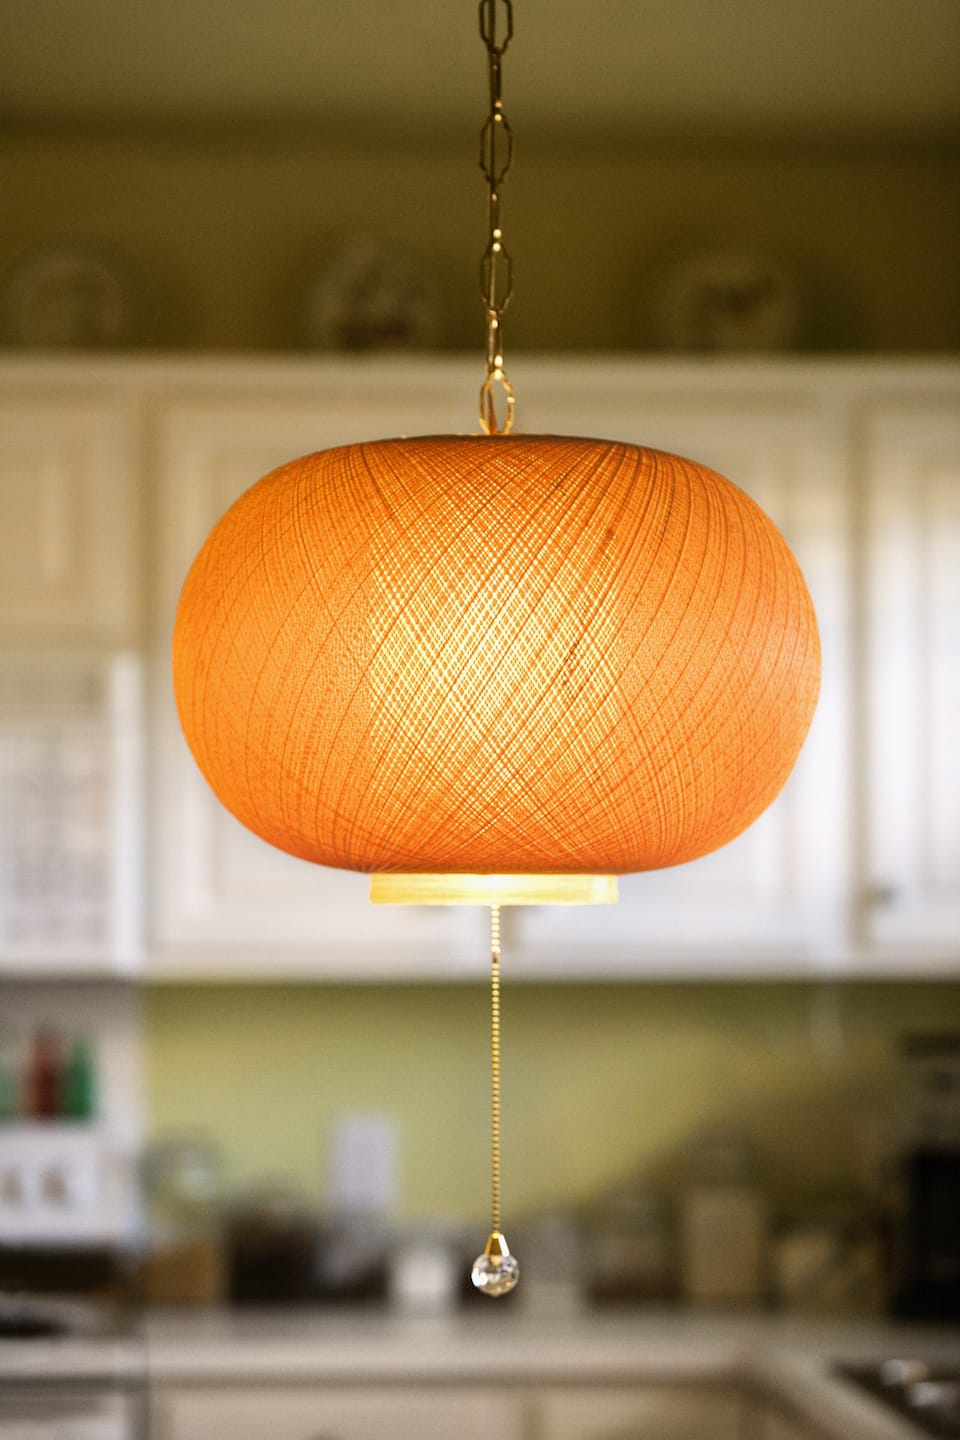 An orange woven light fixture hanging from the ceiling